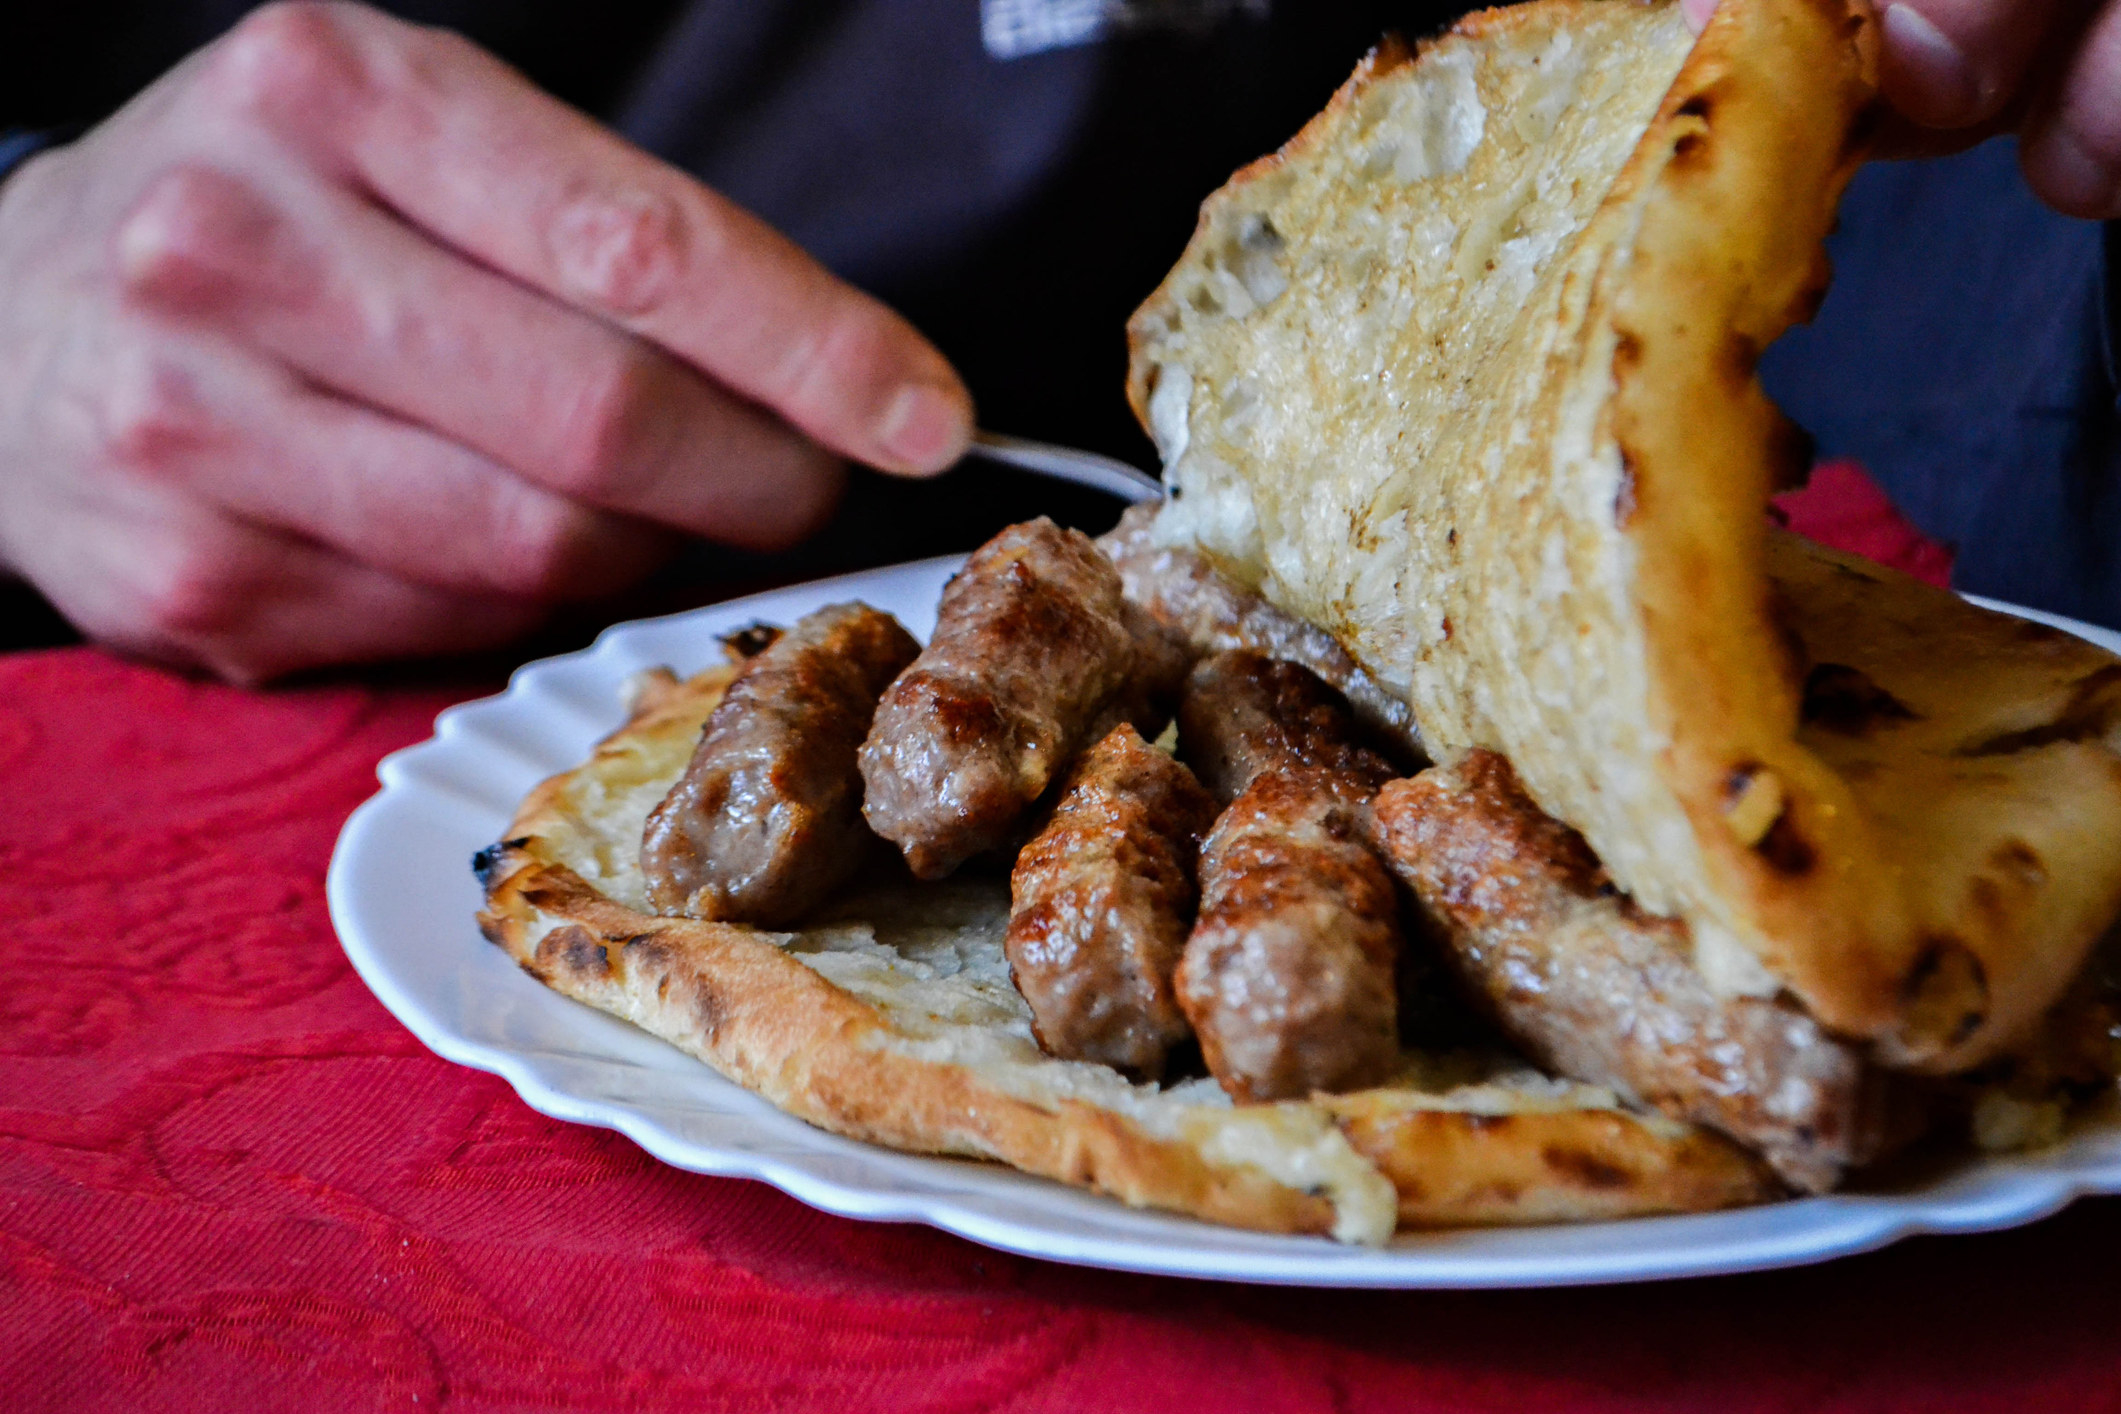 logs of grilled meat inside a thick pita-like bread